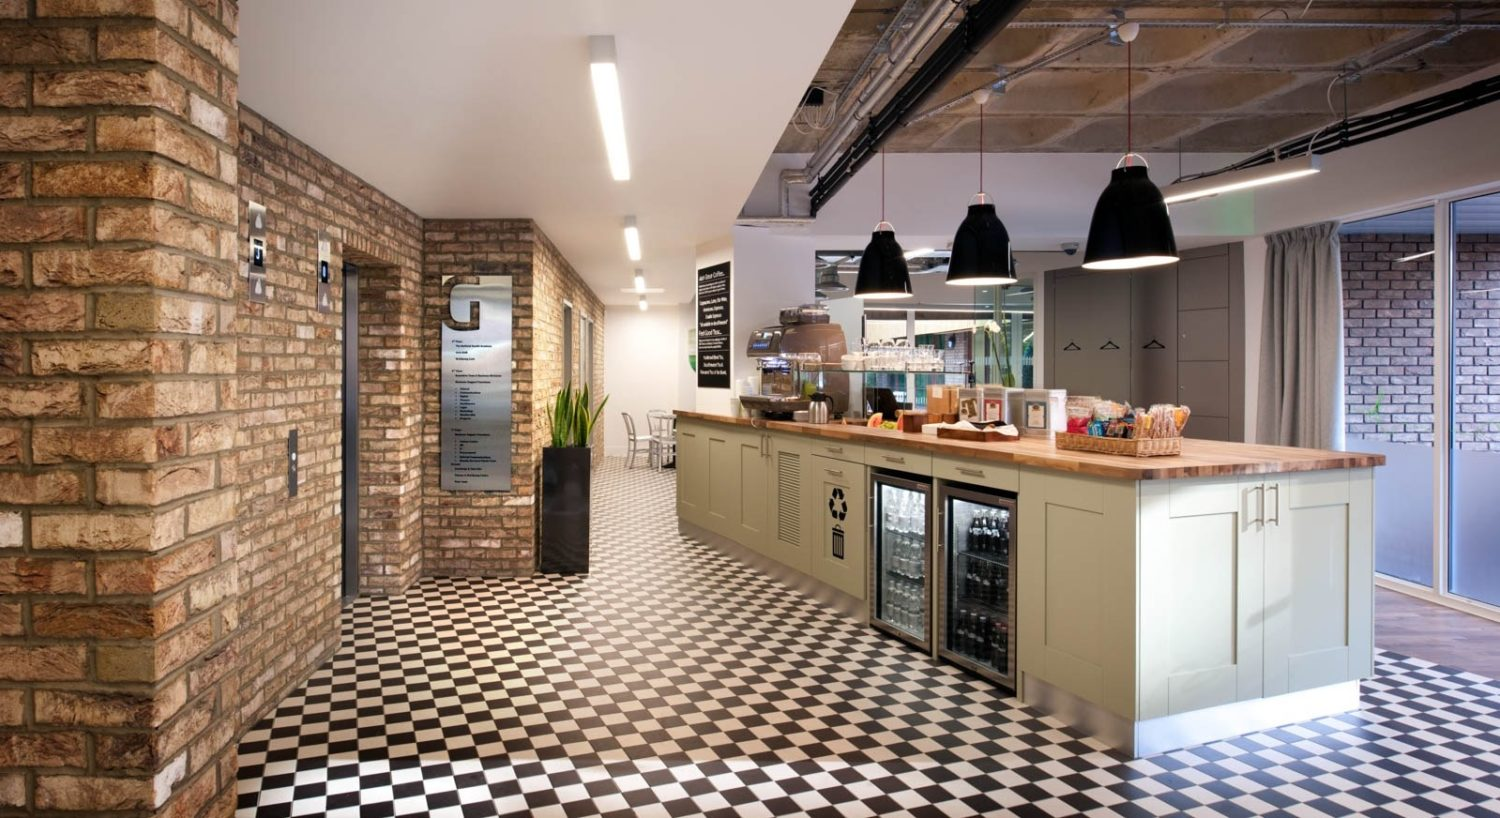 Nuffield Health office design for wellbeing